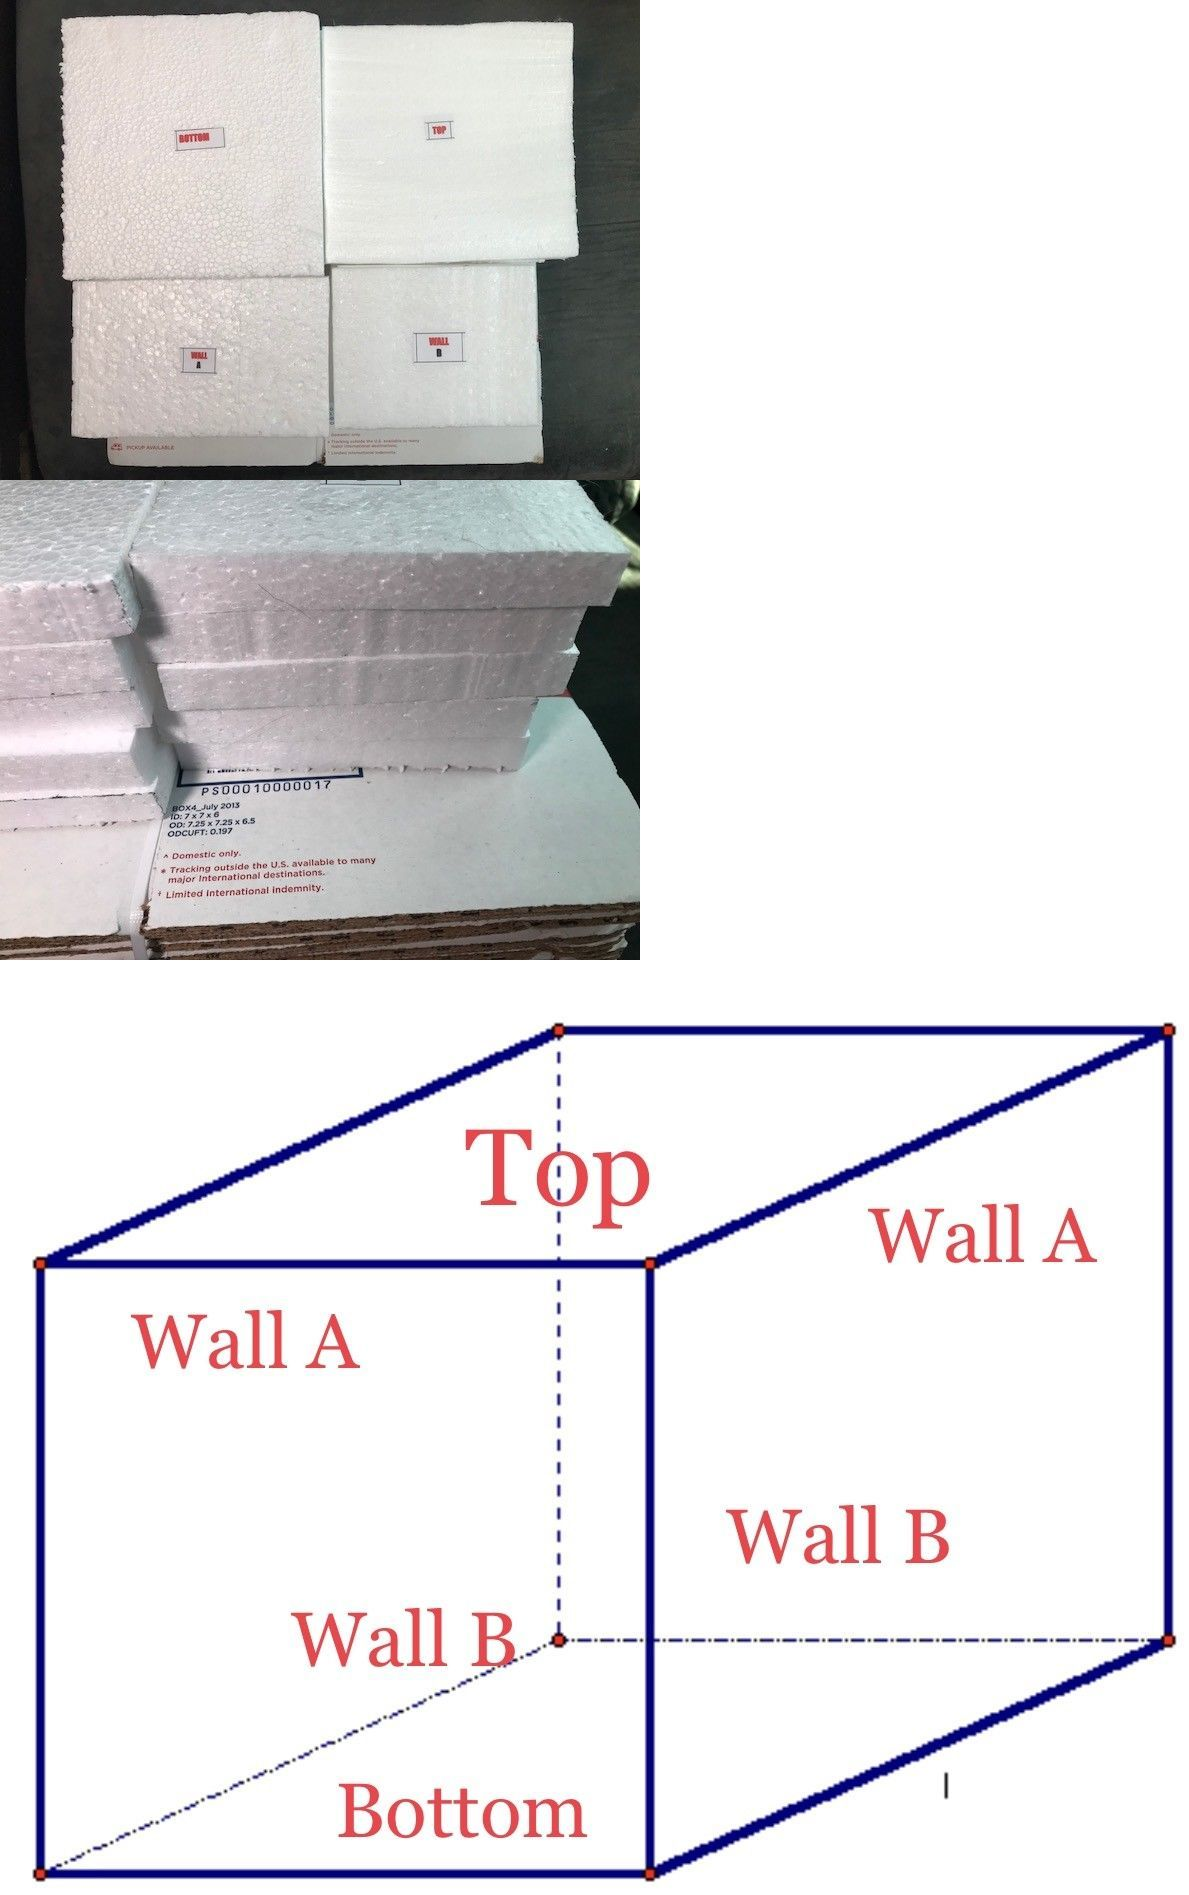 Details about 30 heavy duty styrofoam liners fit 7x7x6